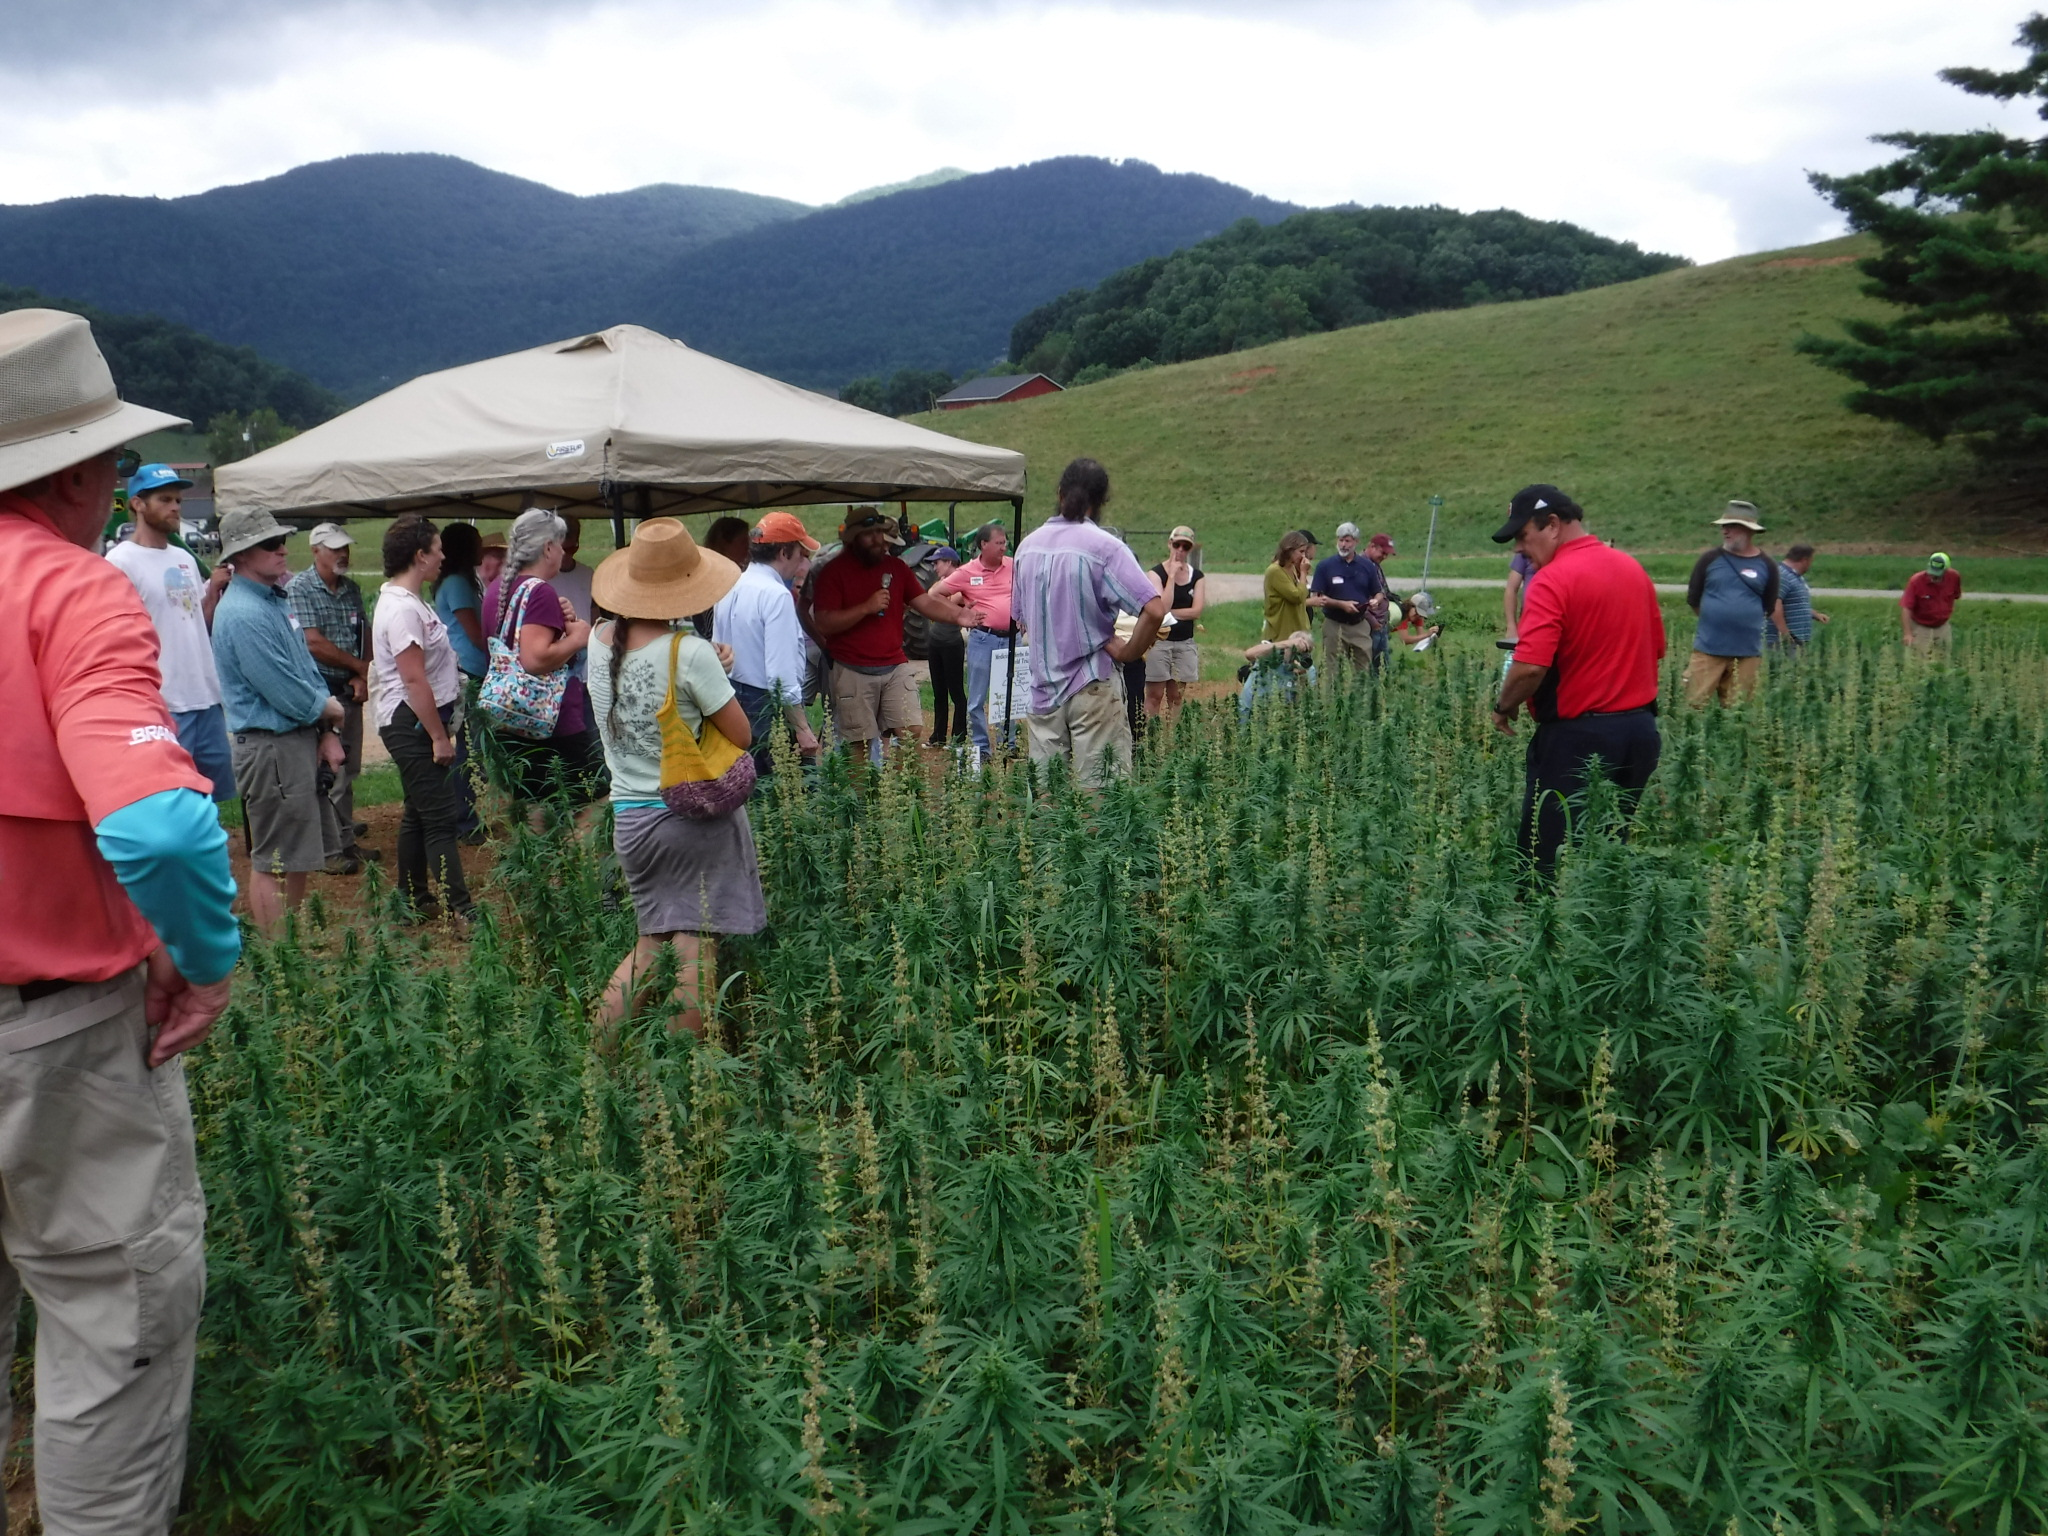 People walking through hemp grain trials